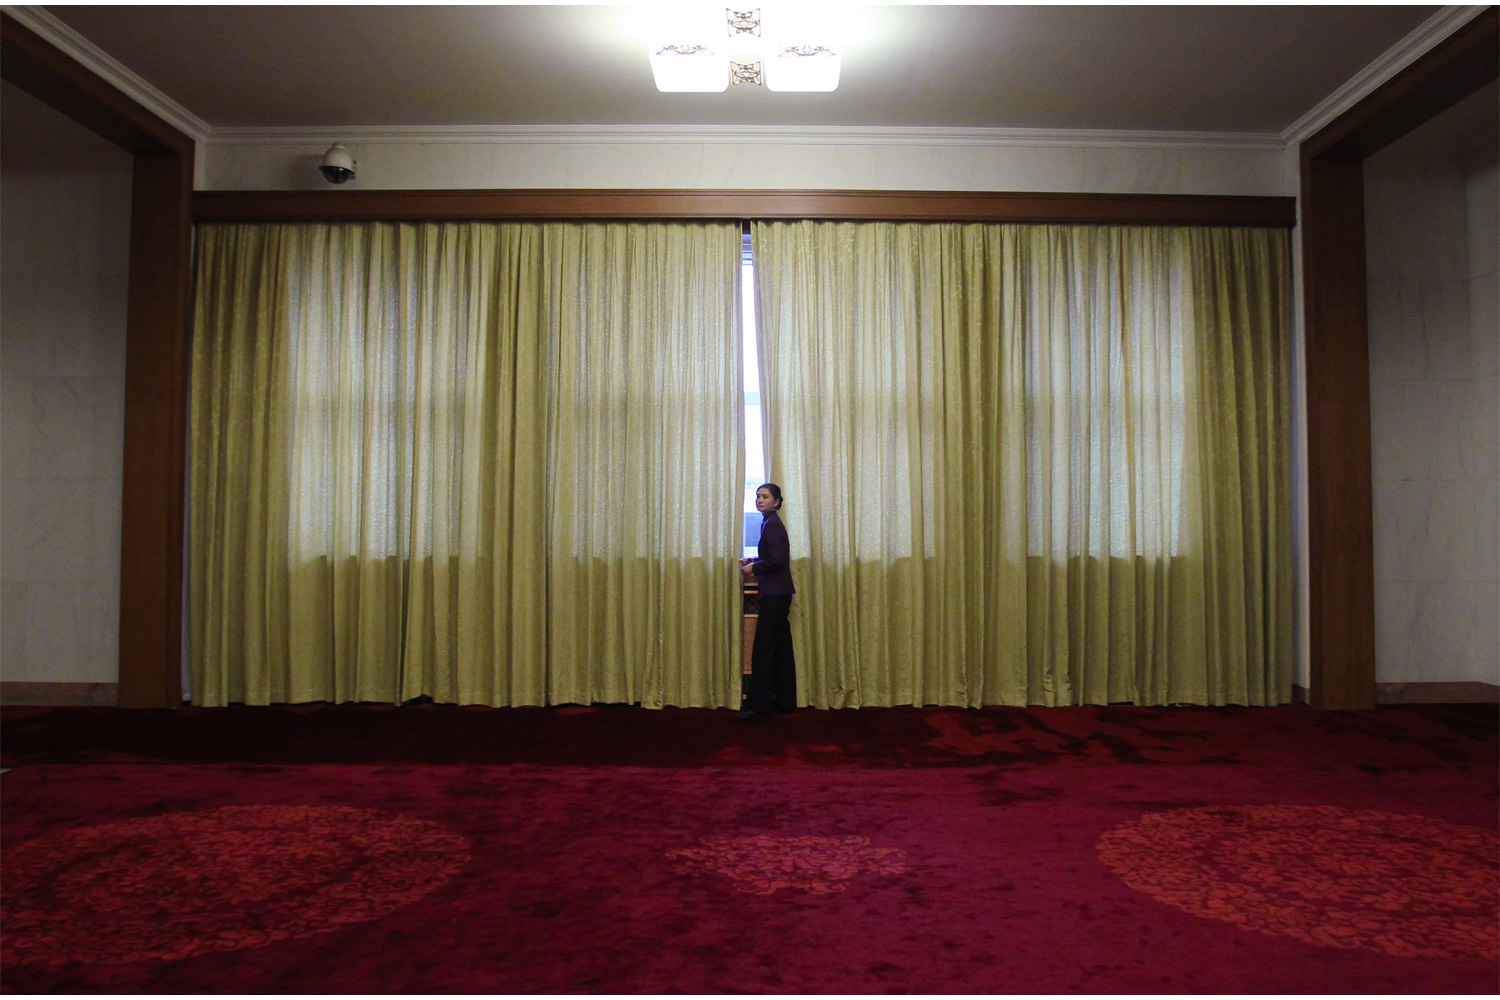 A waitress stands by a window in the corridor outside the Great Hall of the People, March 10, 2011, during the afternoon of the Fourth Session of the 11th CPPCC.